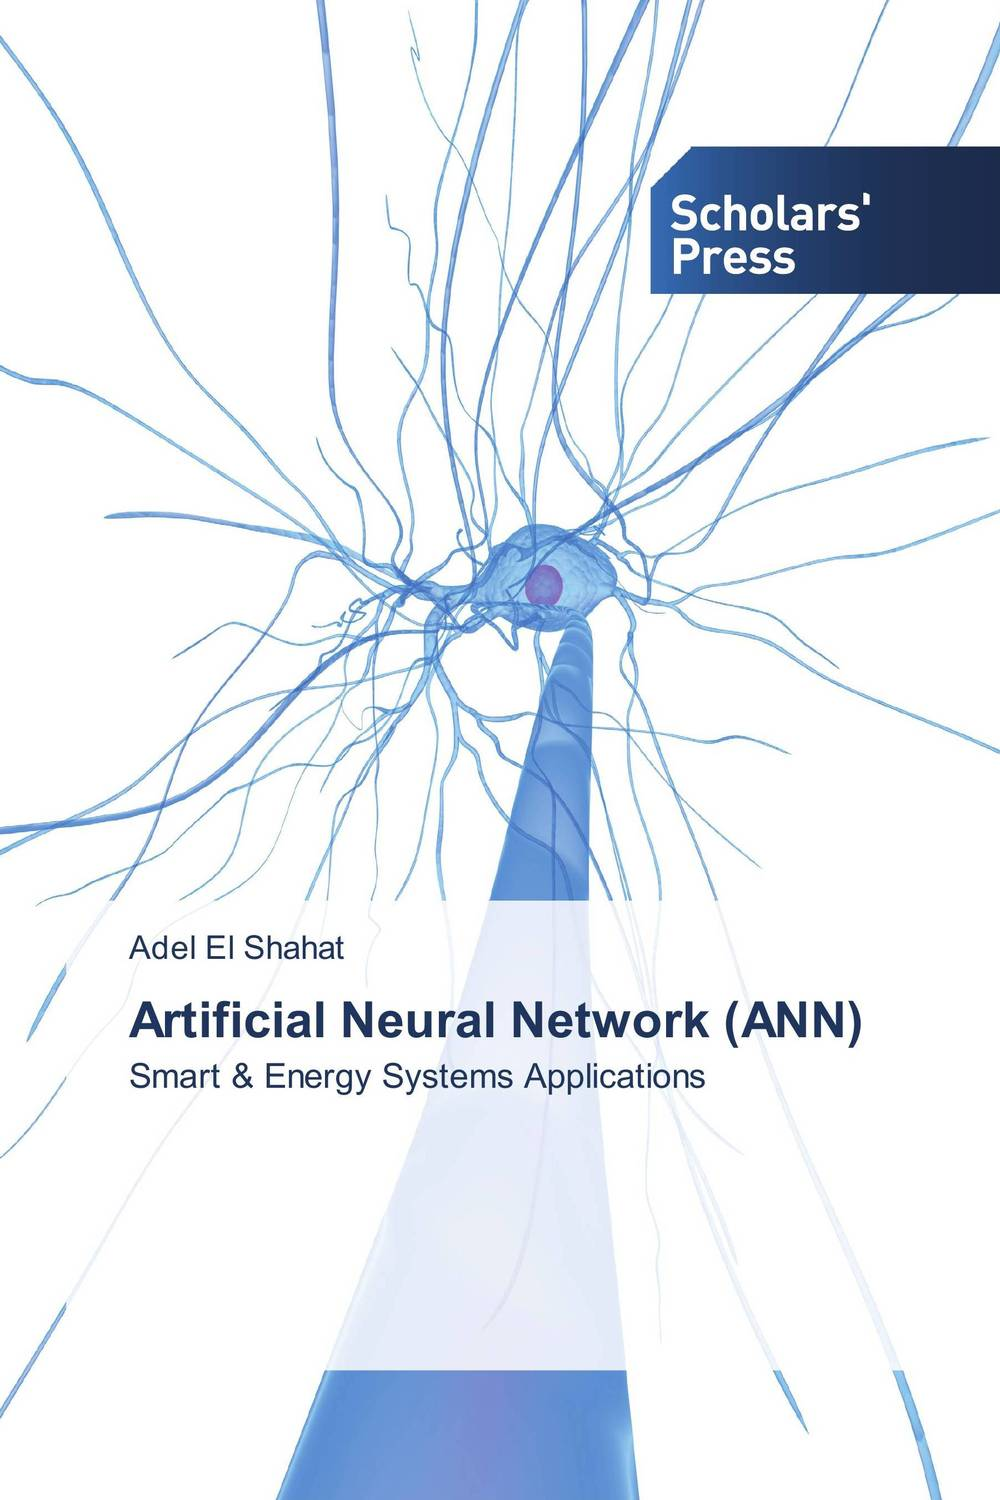 Artificial Neural Network (ANN) mathematical modeling and analysis of therapies for metastatic cancers